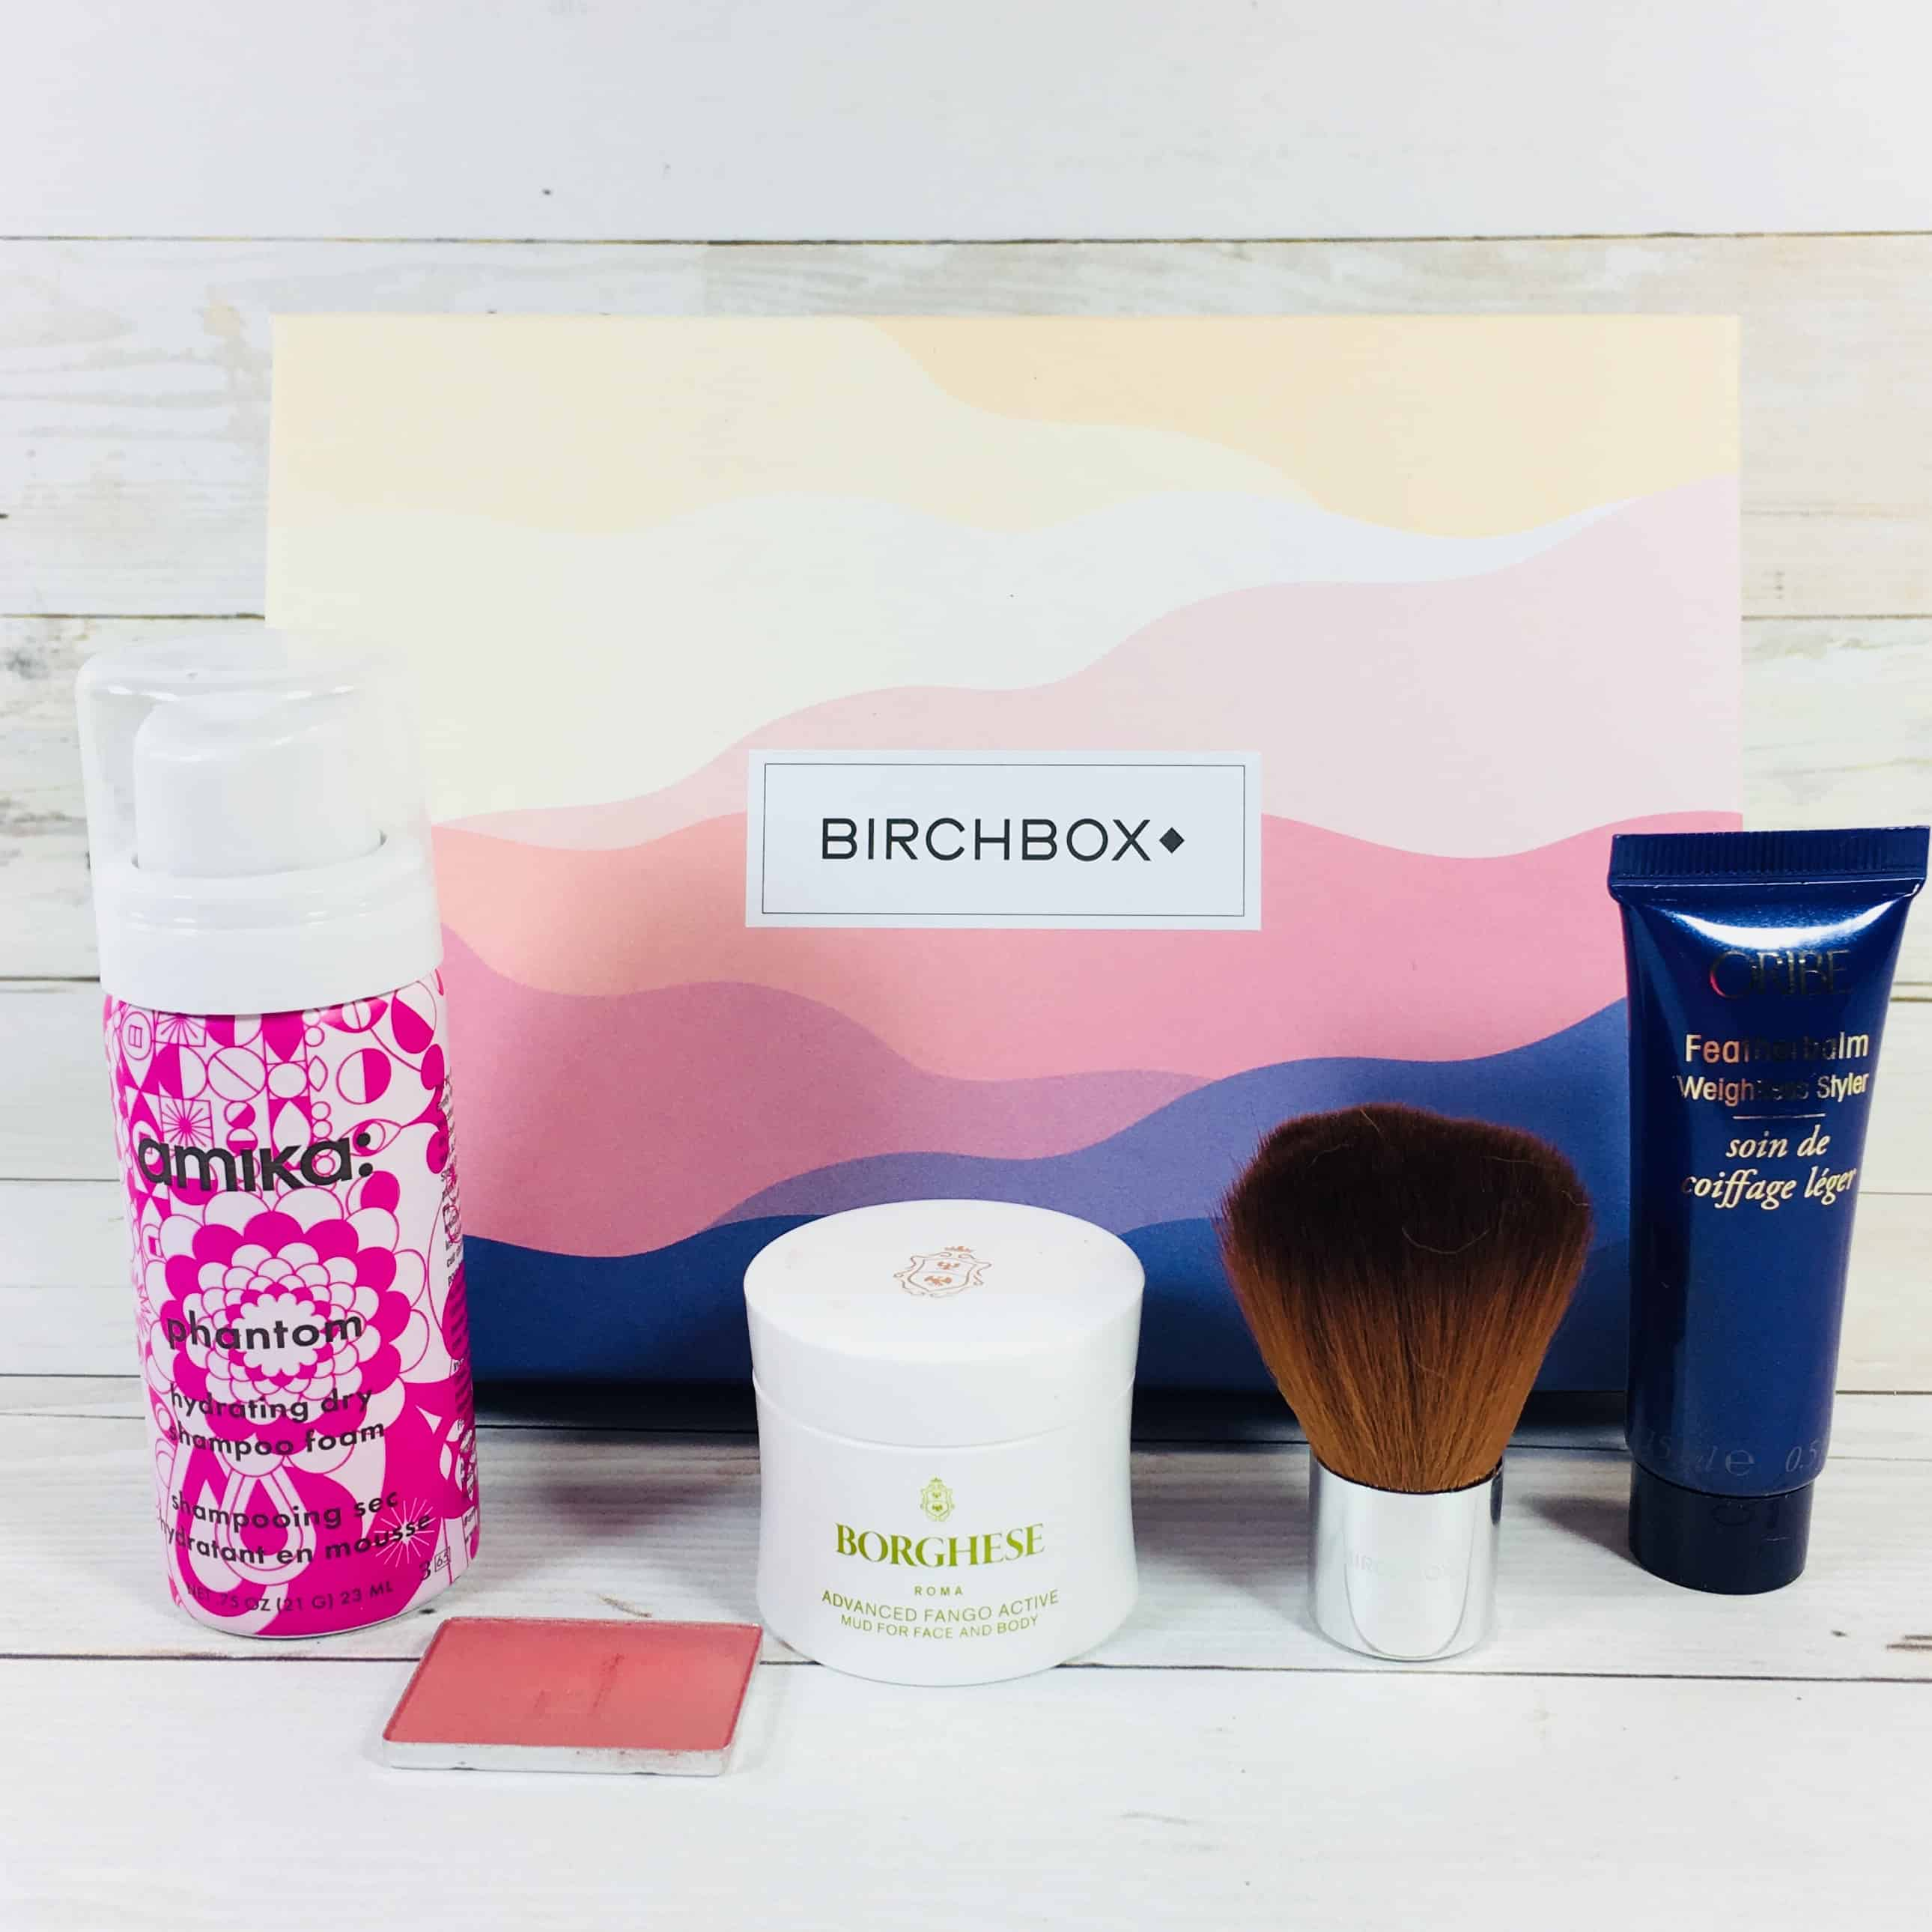 Birchbox August 2018 Curated Box Review + Coupon!